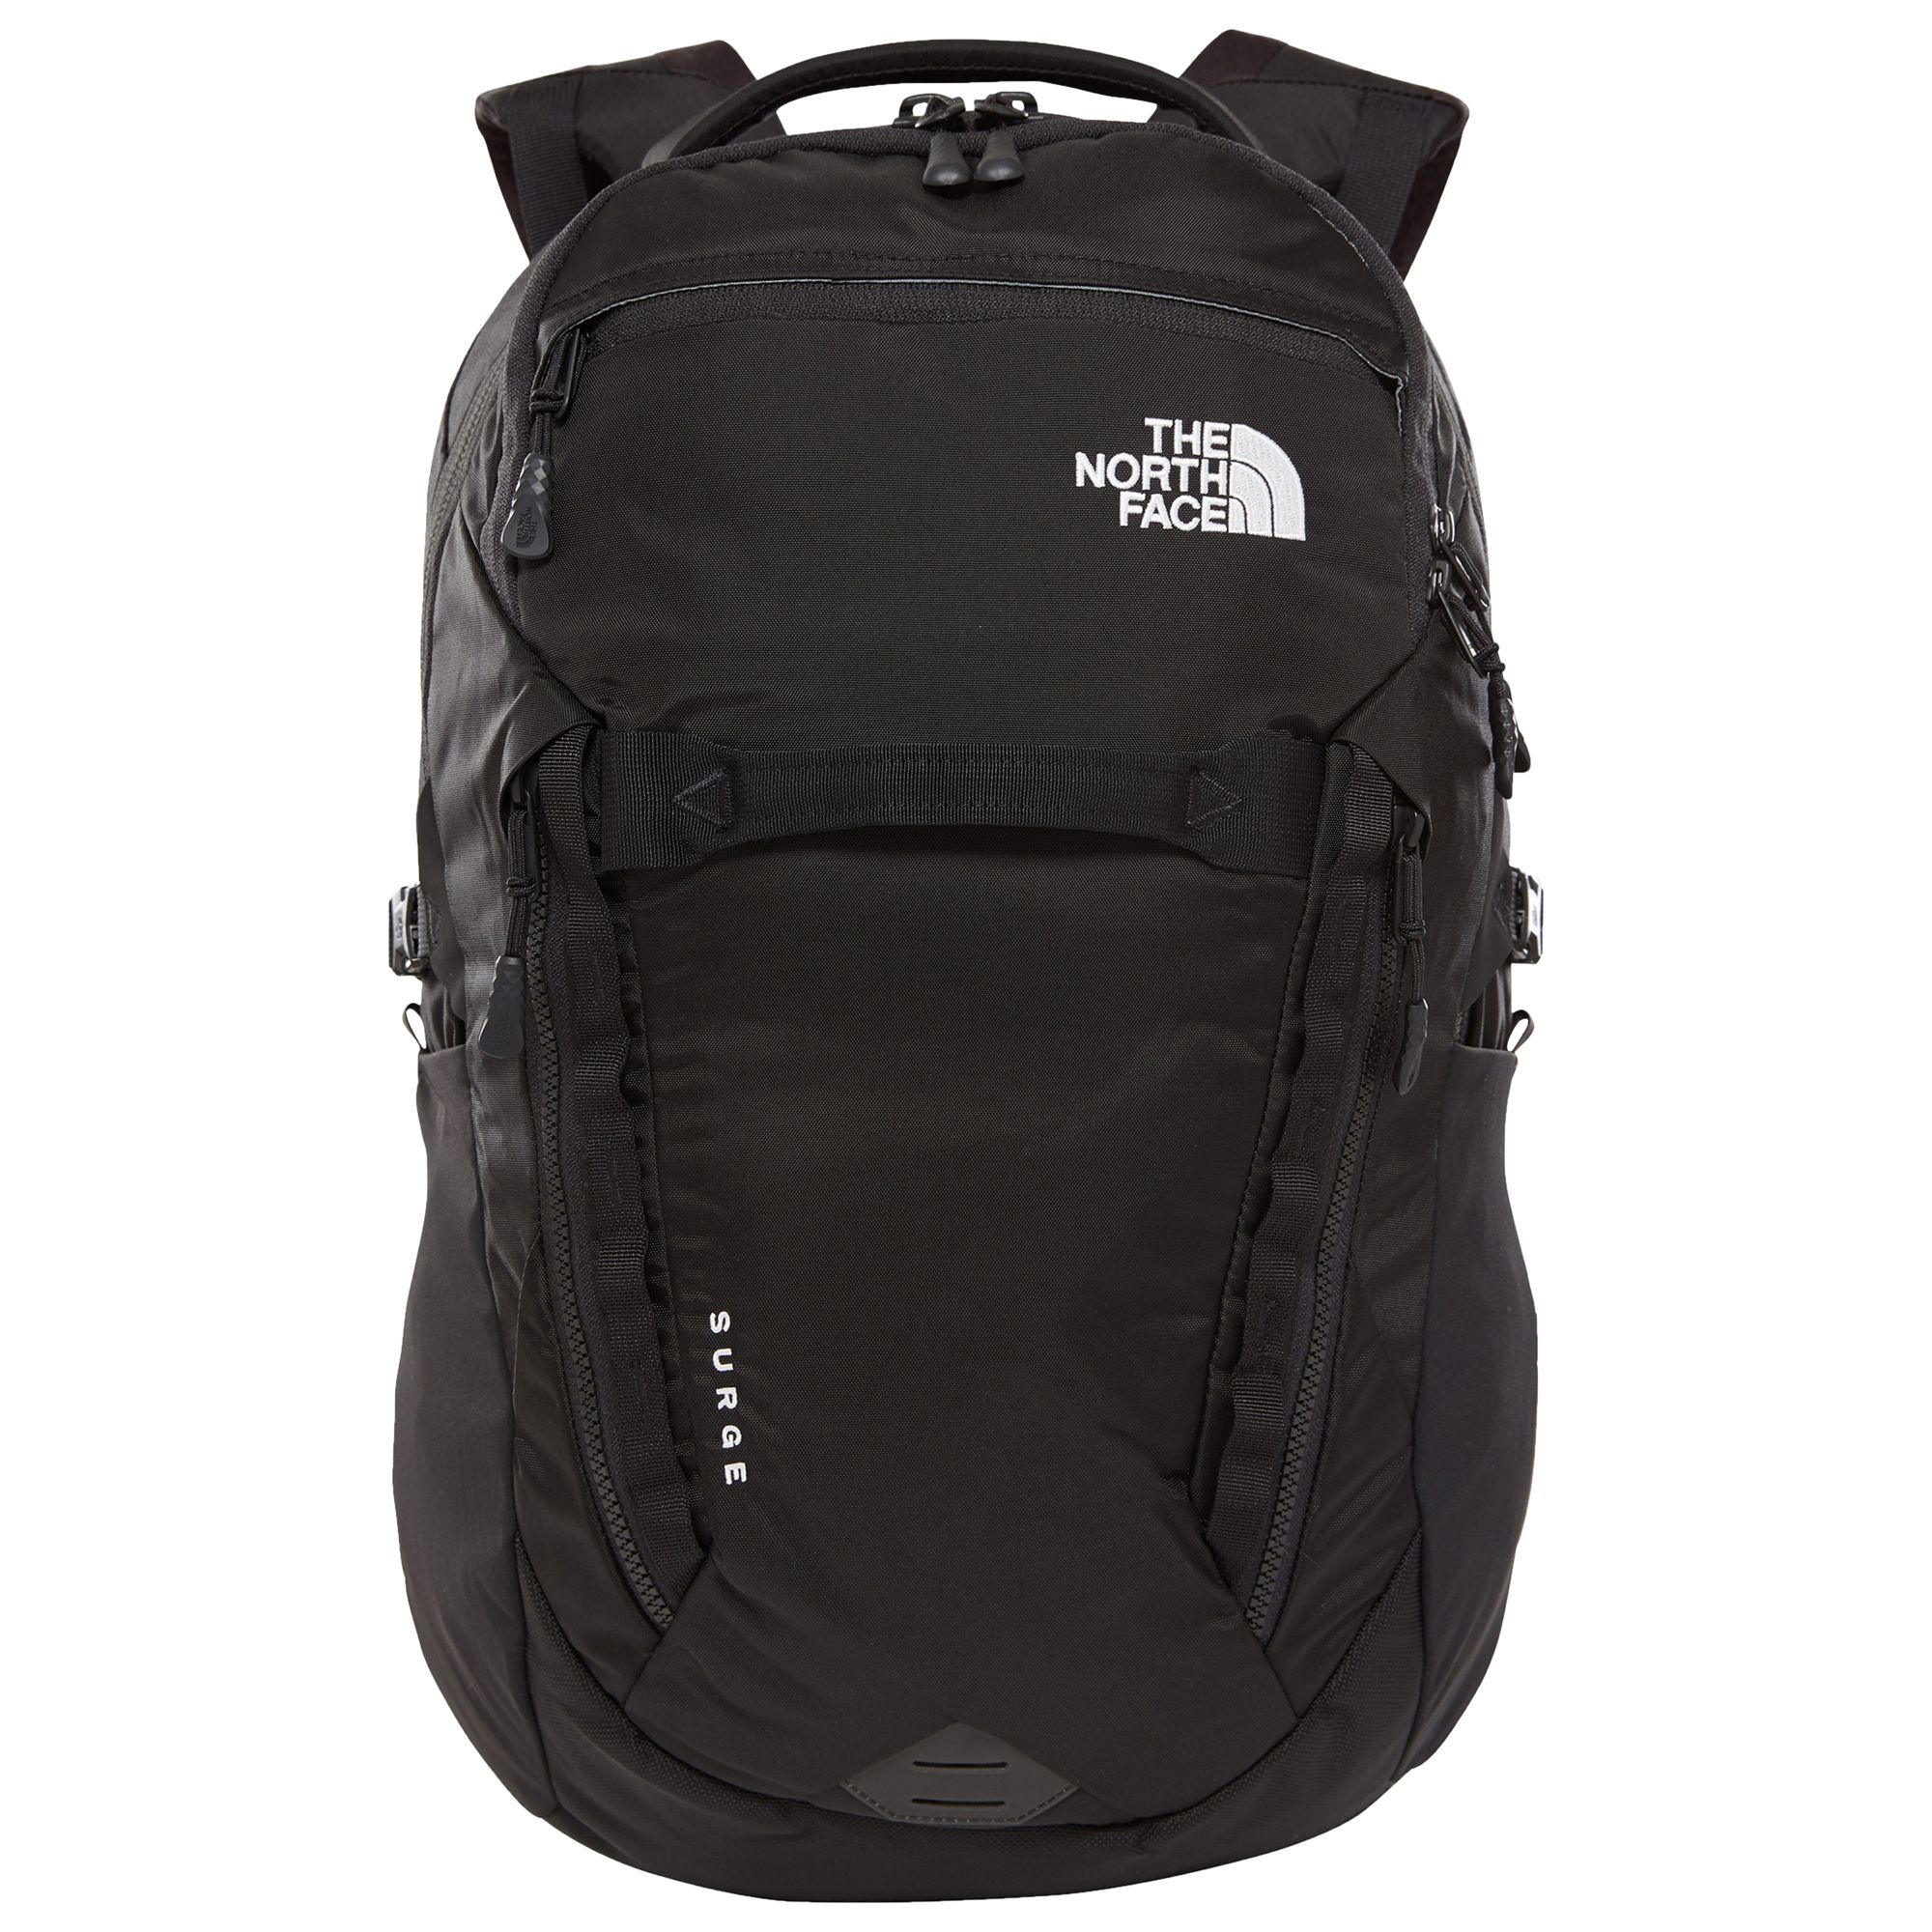 The North Face The North Face Surge Backpack, Black